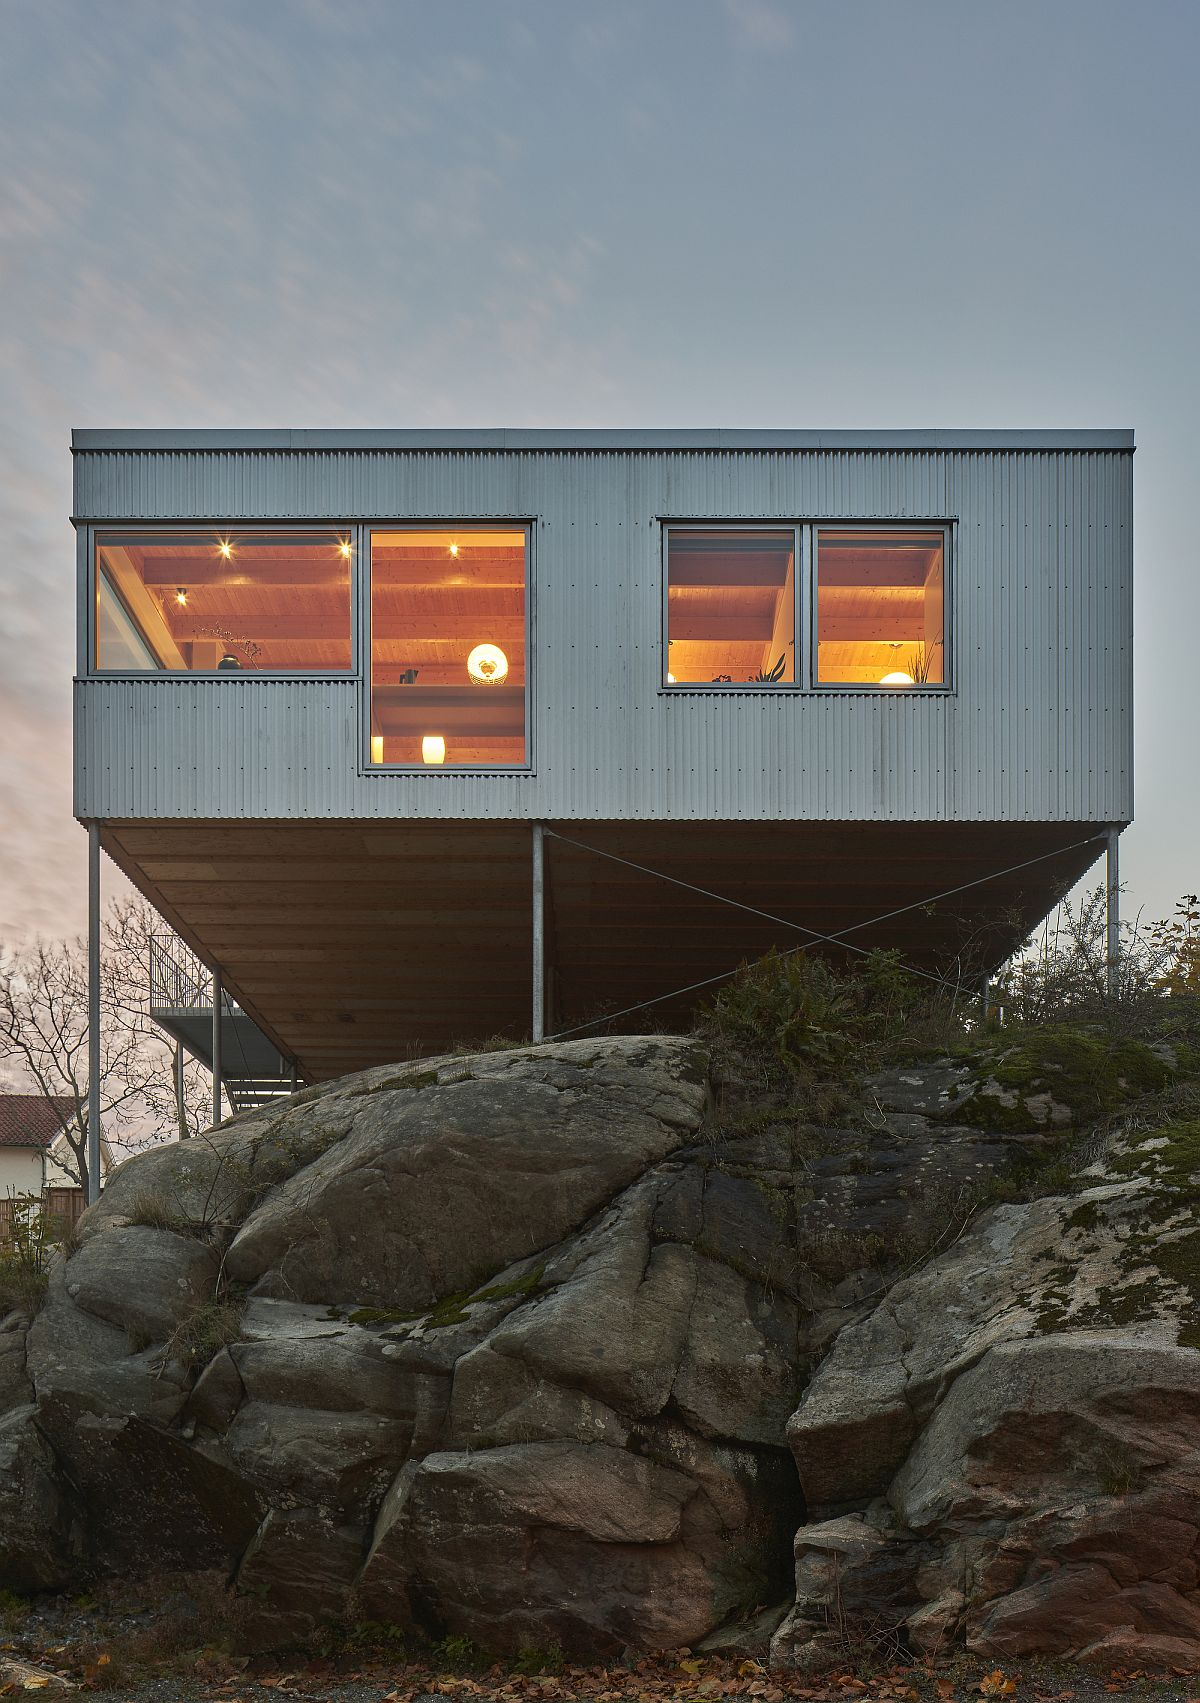 Warm lighting illuminates the interior of the house while adding to the facade